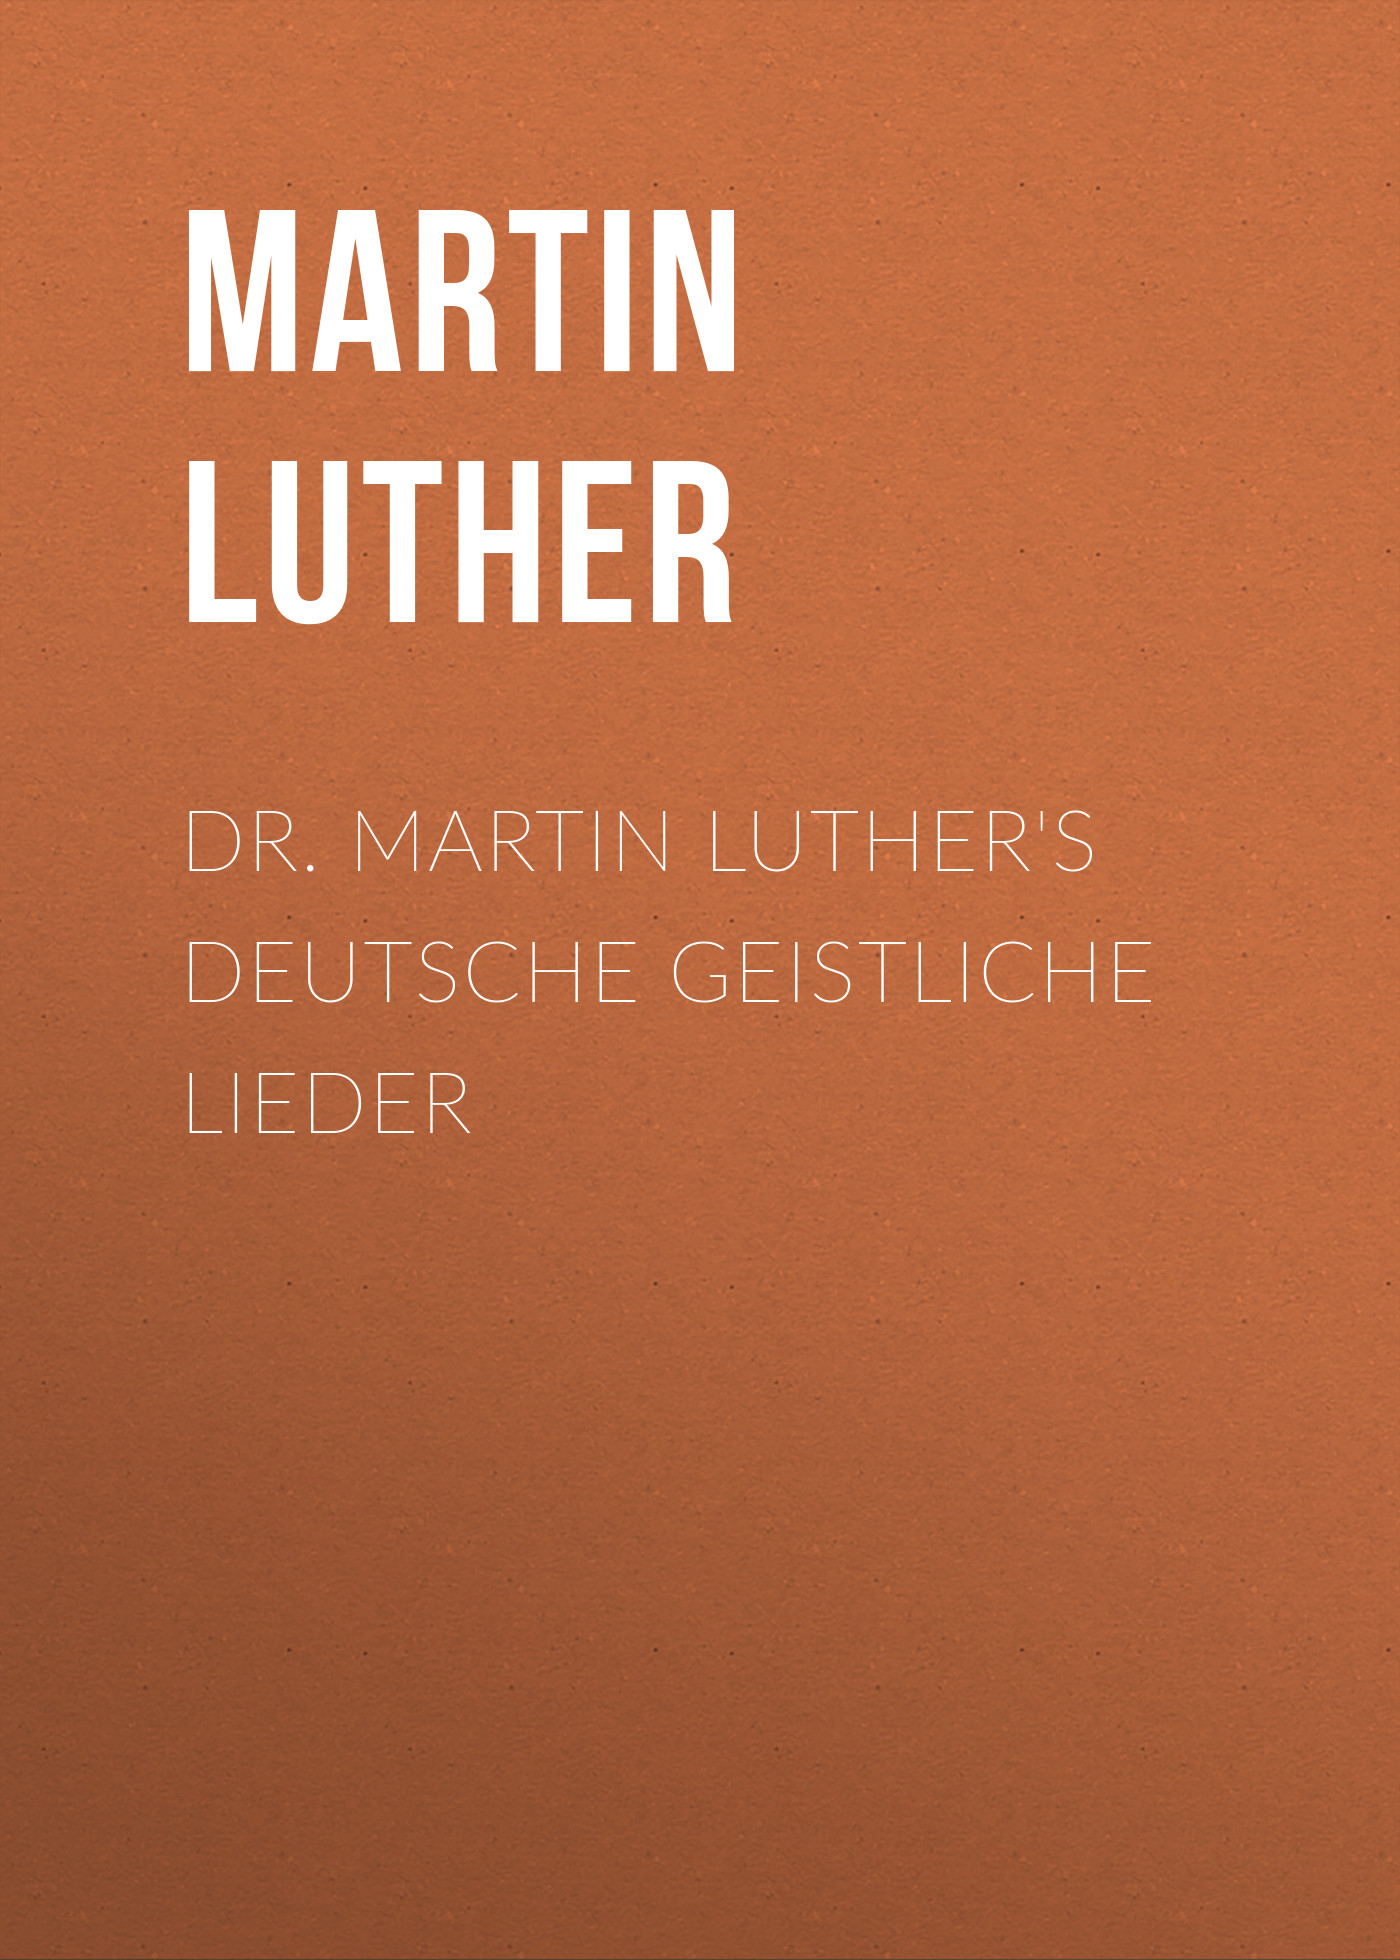 Martin Luther Dr. Martin Luther's Deutsche Geistliche Lieder кеды martin pescatore martin pescatore ma108awvev83